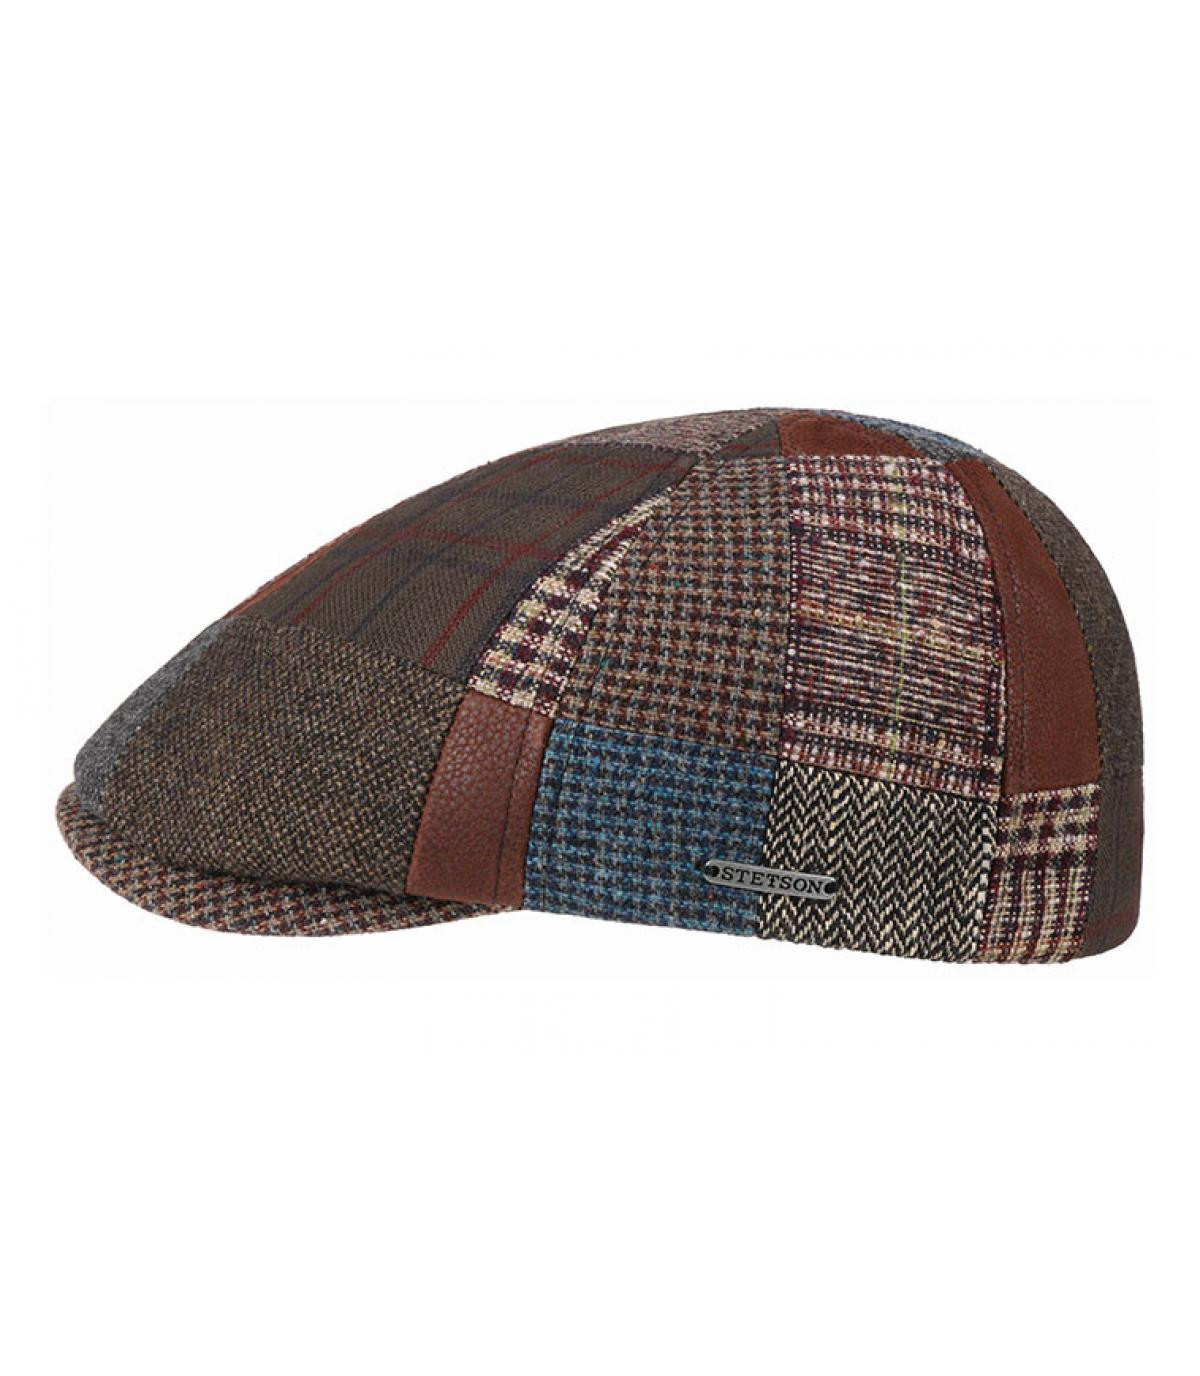 wool leather patchwork flat cap